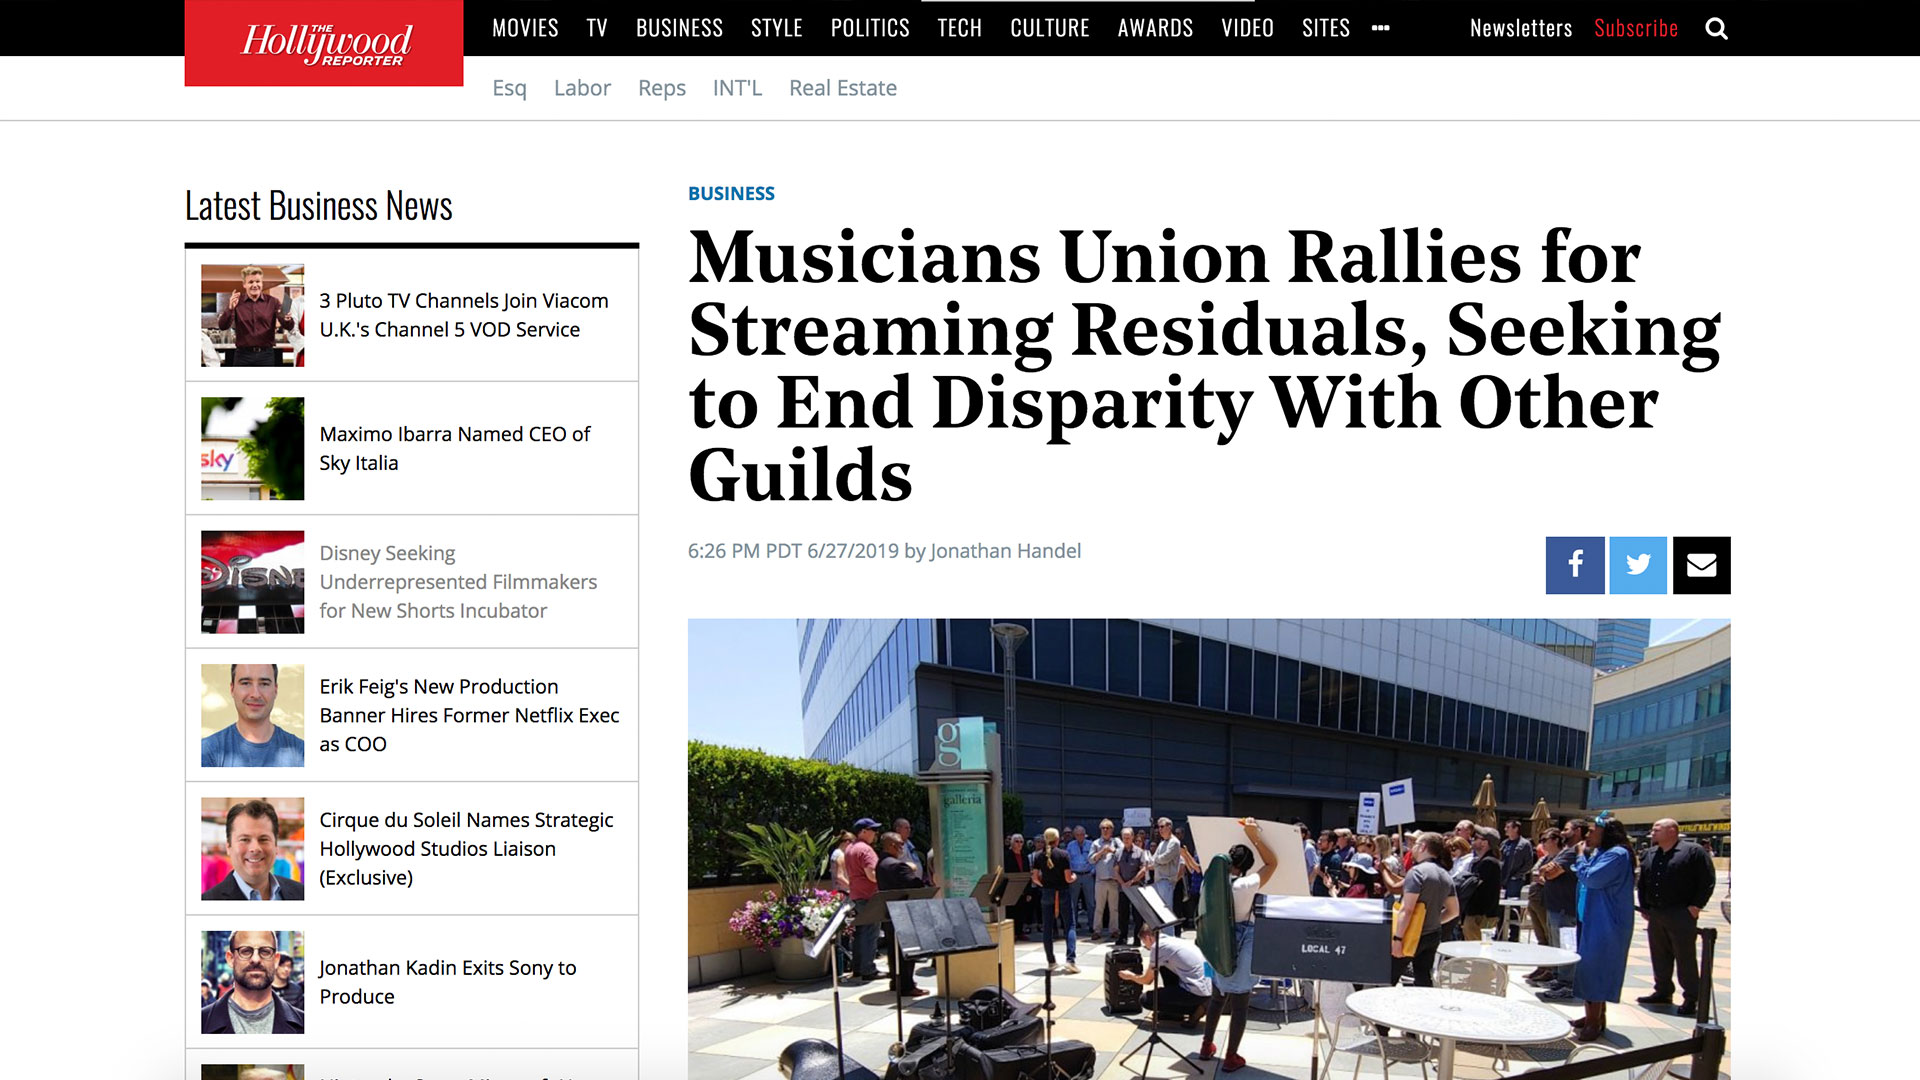 Fairness Rocks News Musicians Union Rallies for Streaming Residuals, Seeking to End Disparity With Other Guilds